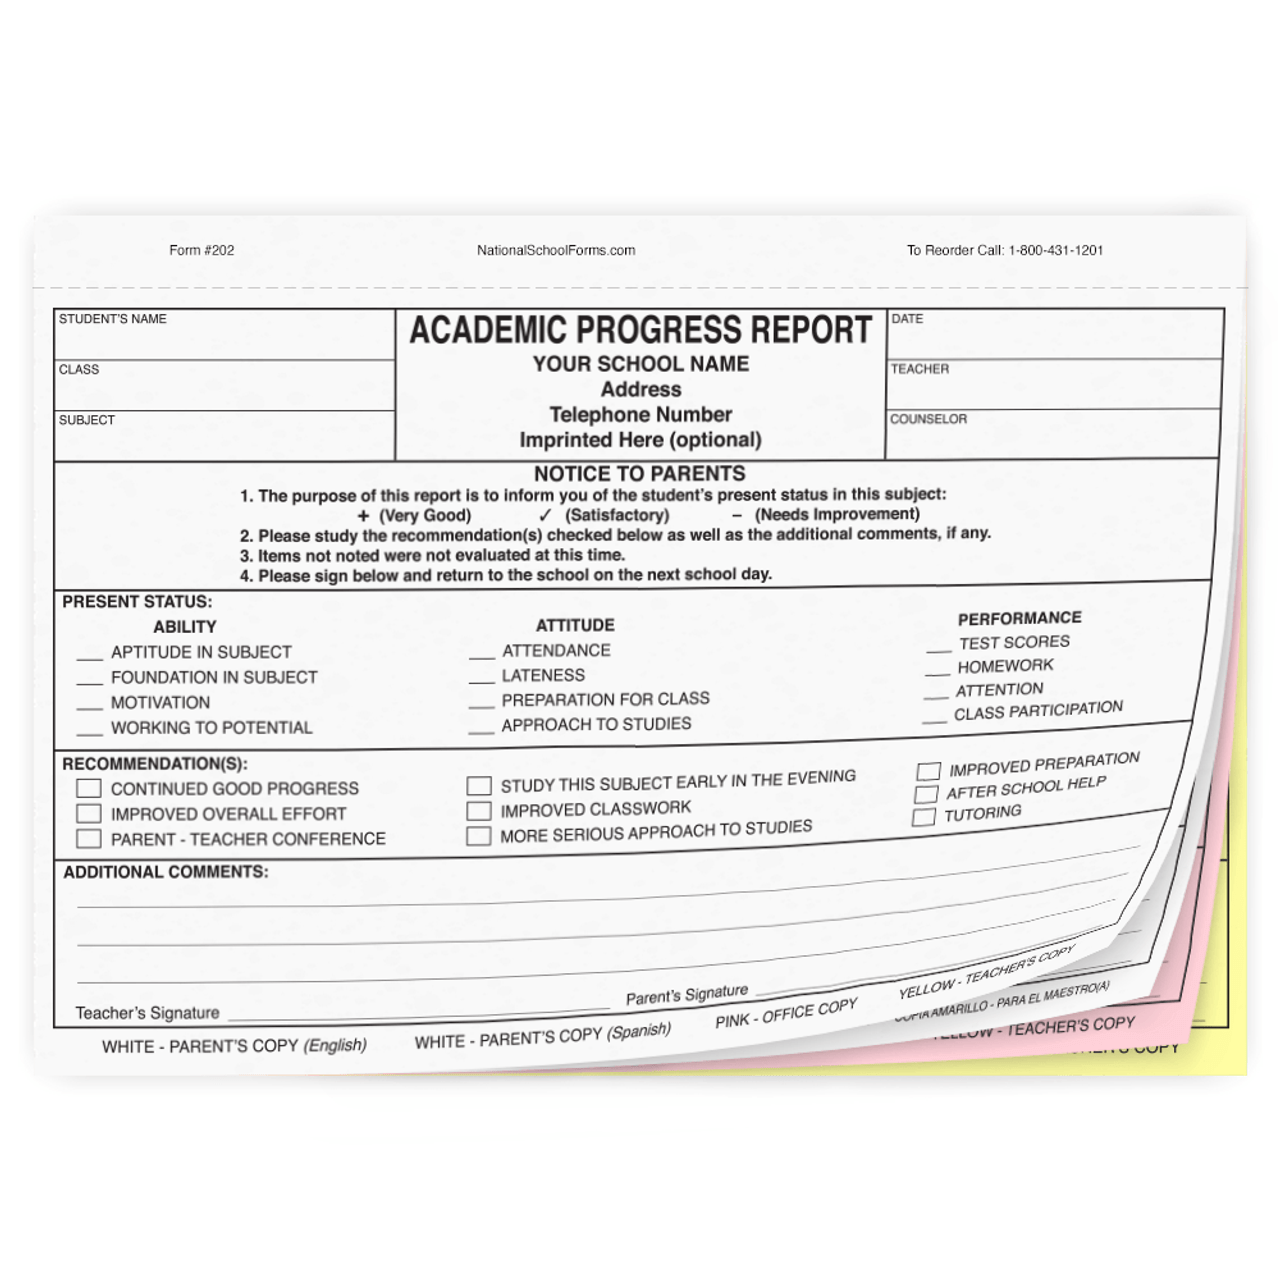 Bilingual Academic Progress Report - English/Spanish (202)